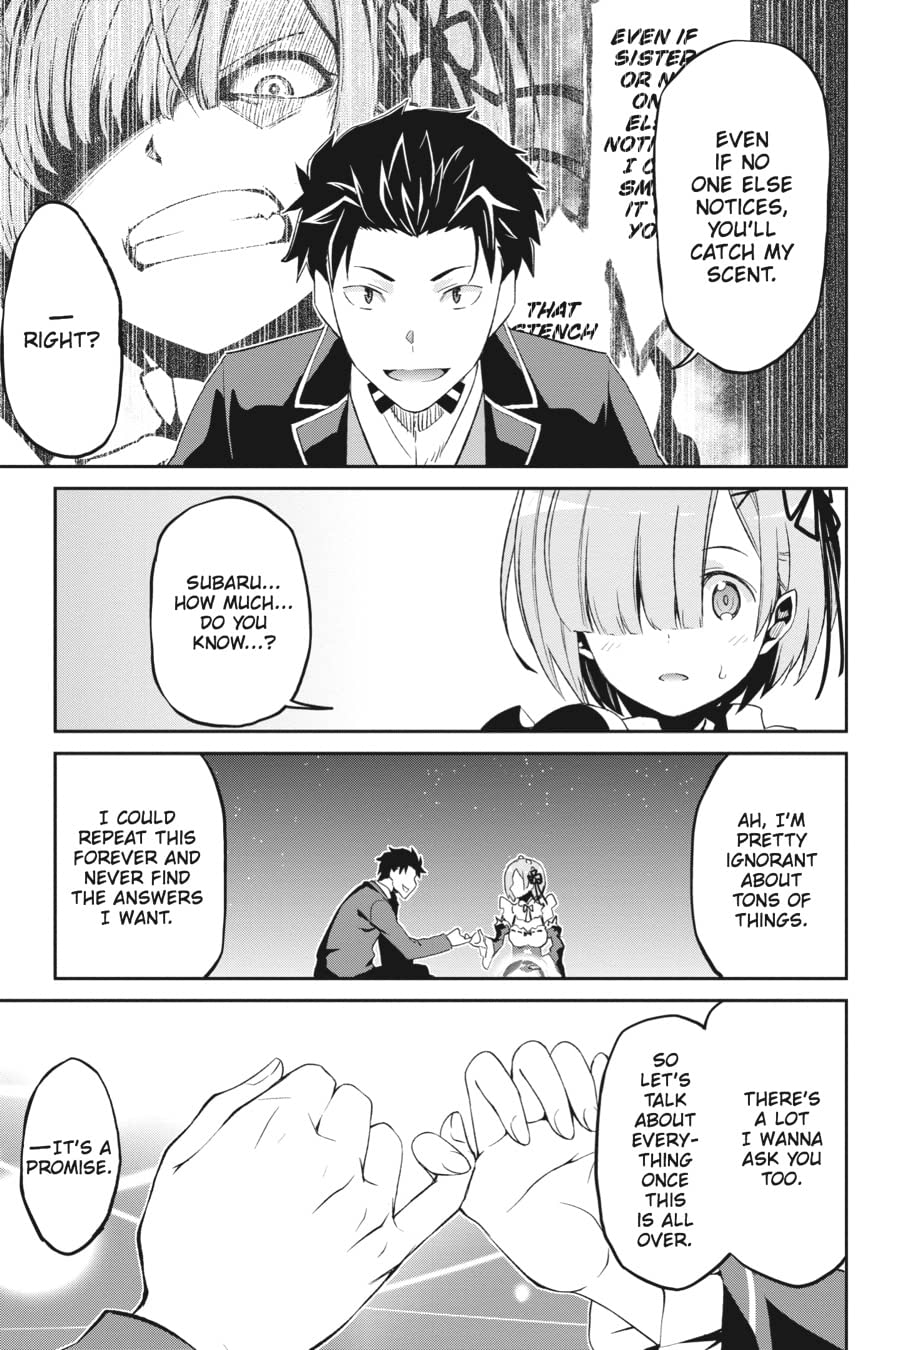 Re:ZERO -Starting Life in Another World- A Week at the Mansion Vol. 4 #2